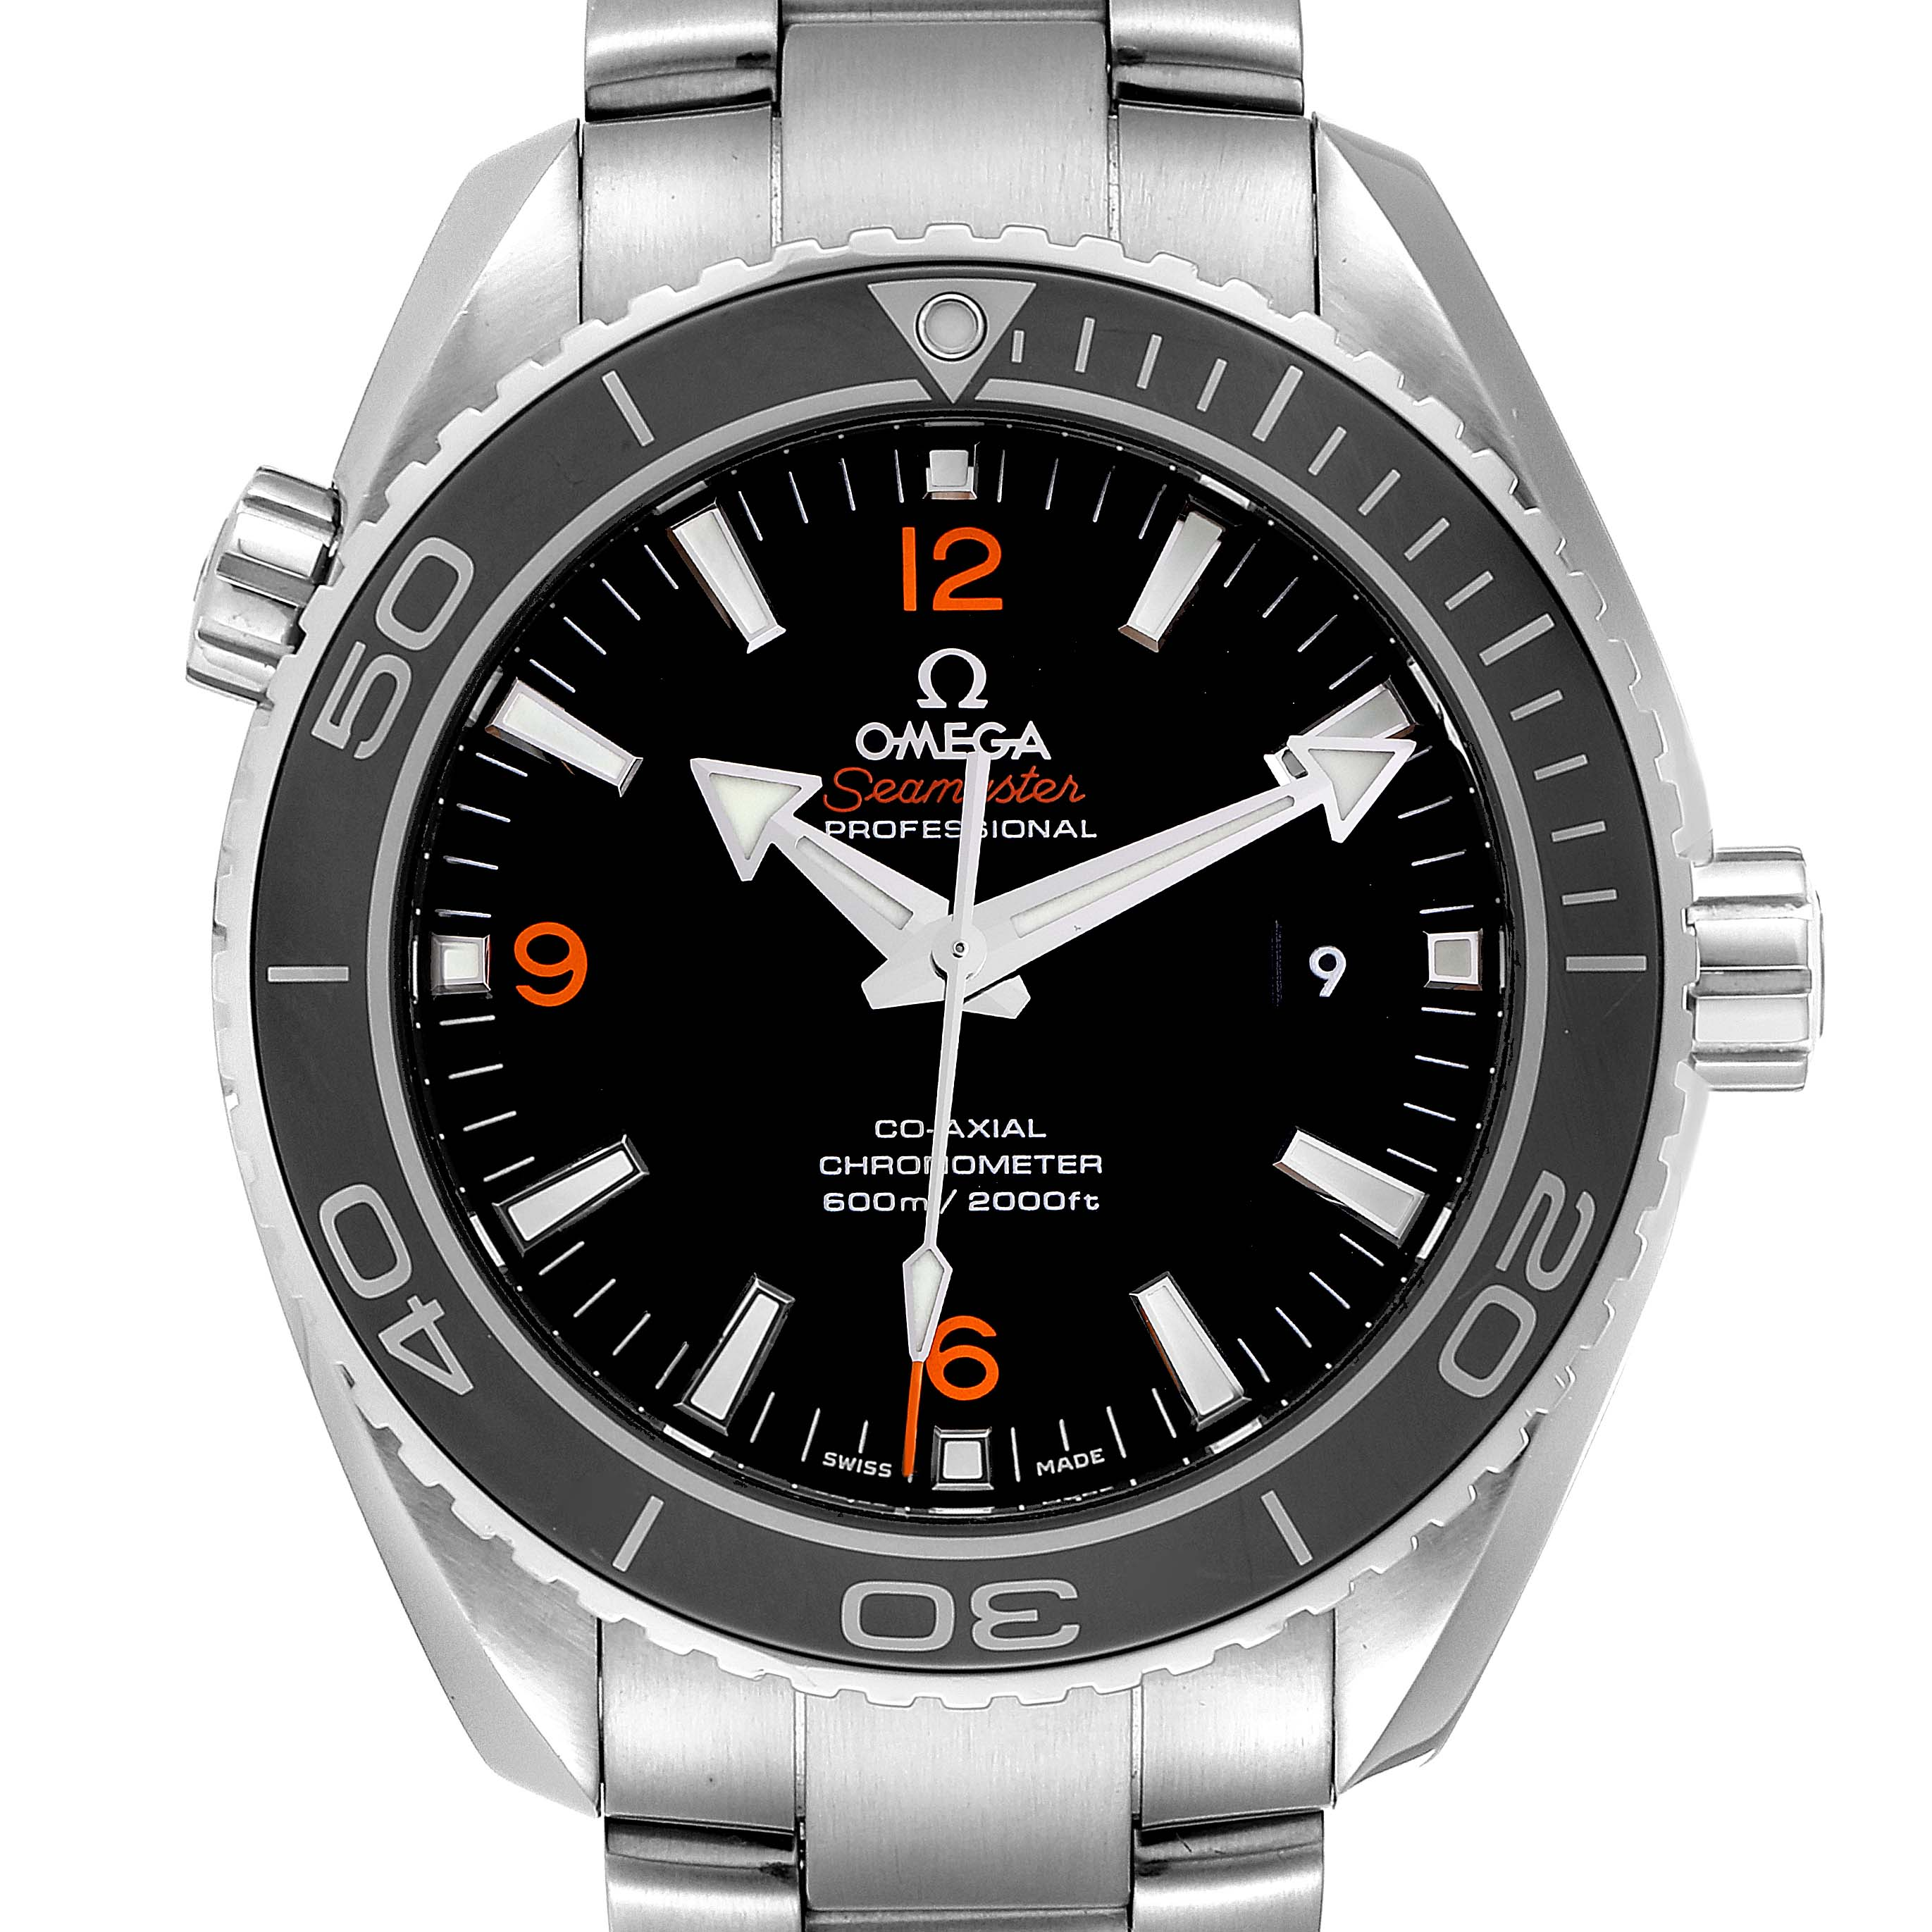 Photo of Omega Seamaster Planet Ocean 600M Watch 232.30.46.21.01.003 Box Card